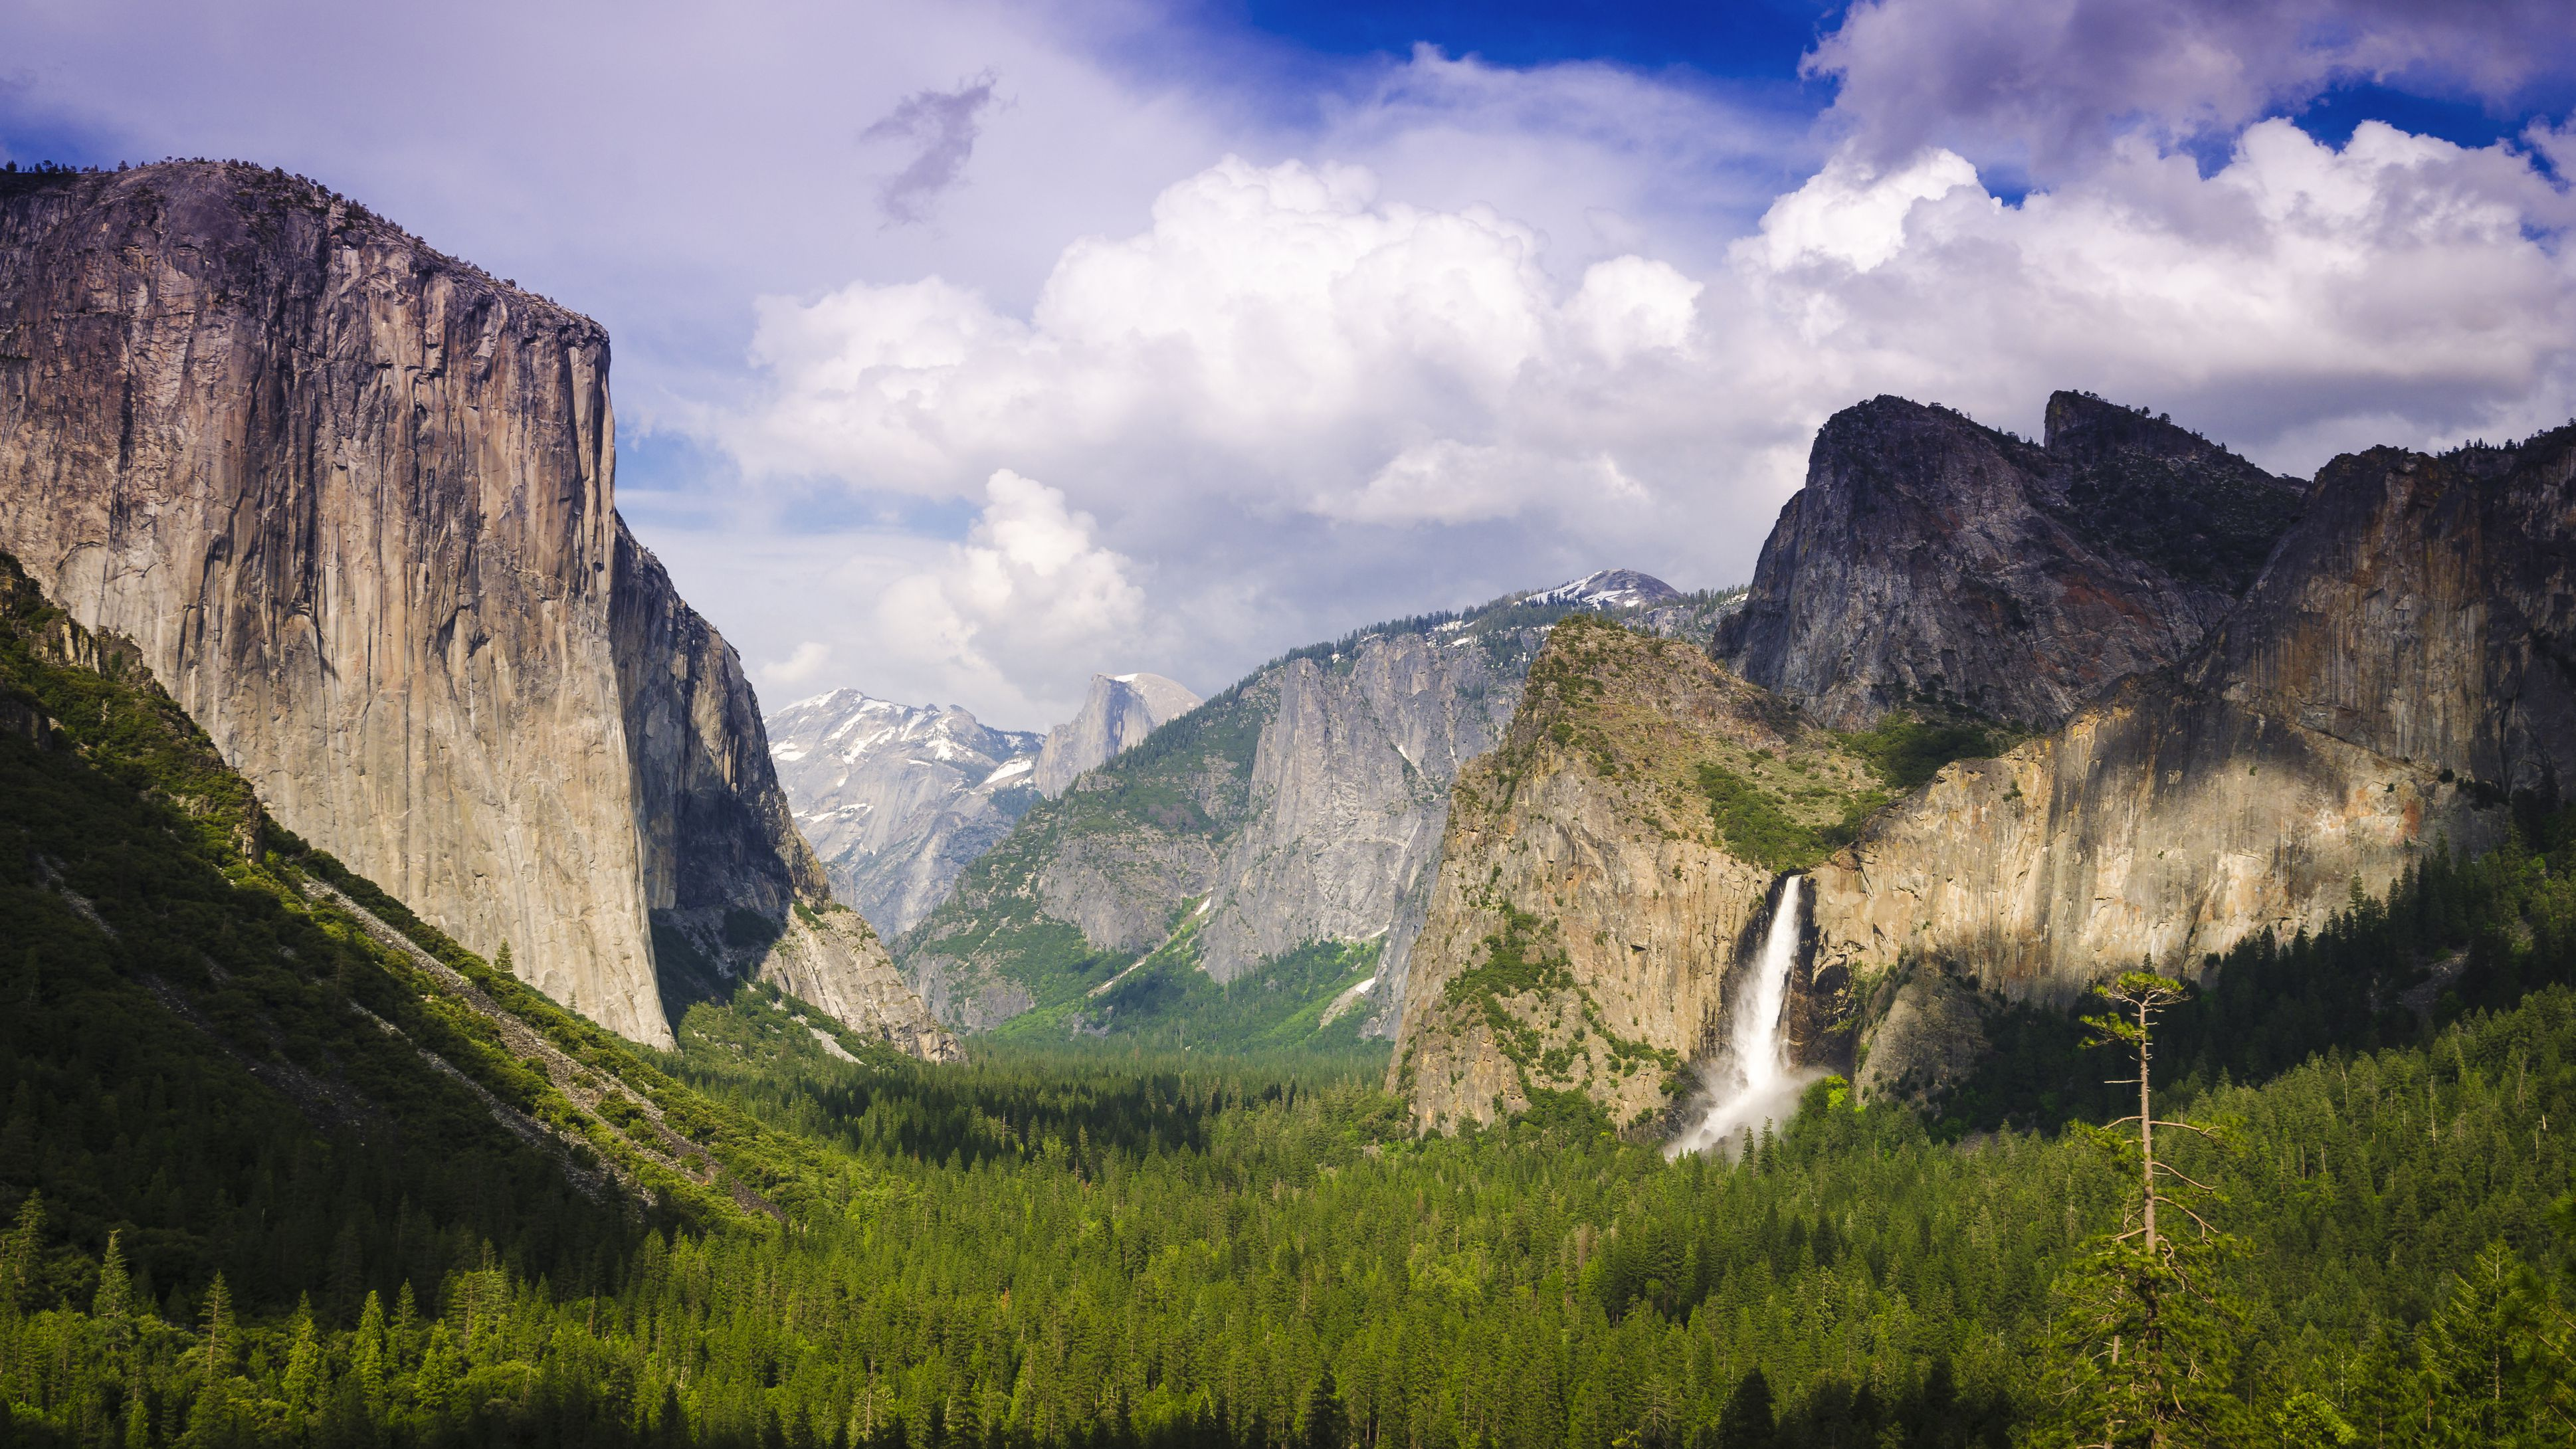 Traveling From San Francisco to Yosemite National Park